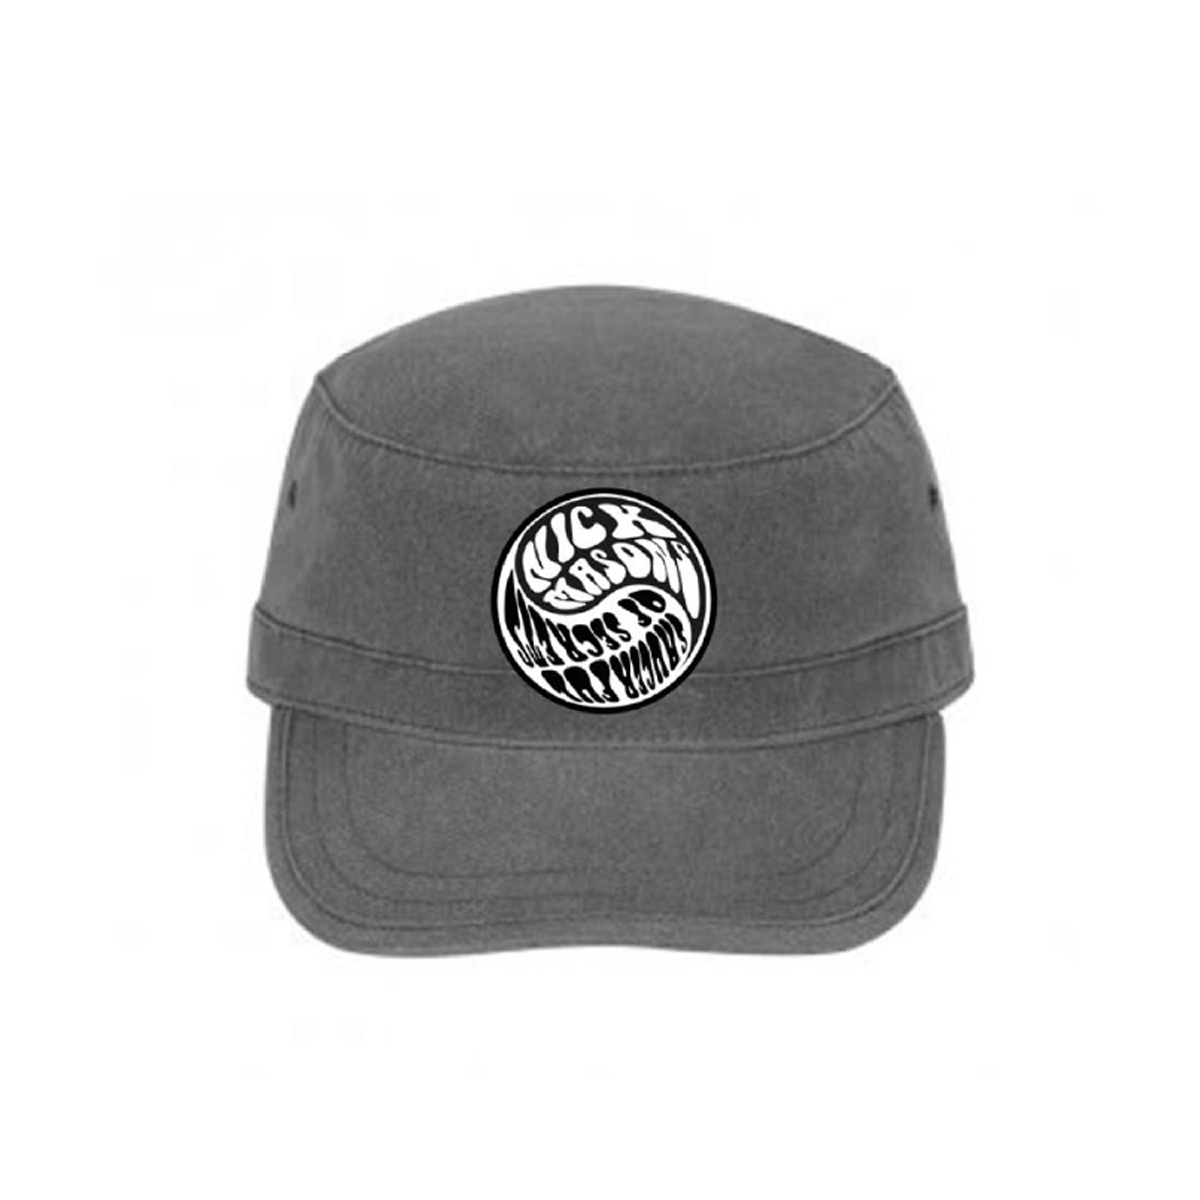 Nick Mason's Saucerful Of Secrets Cap